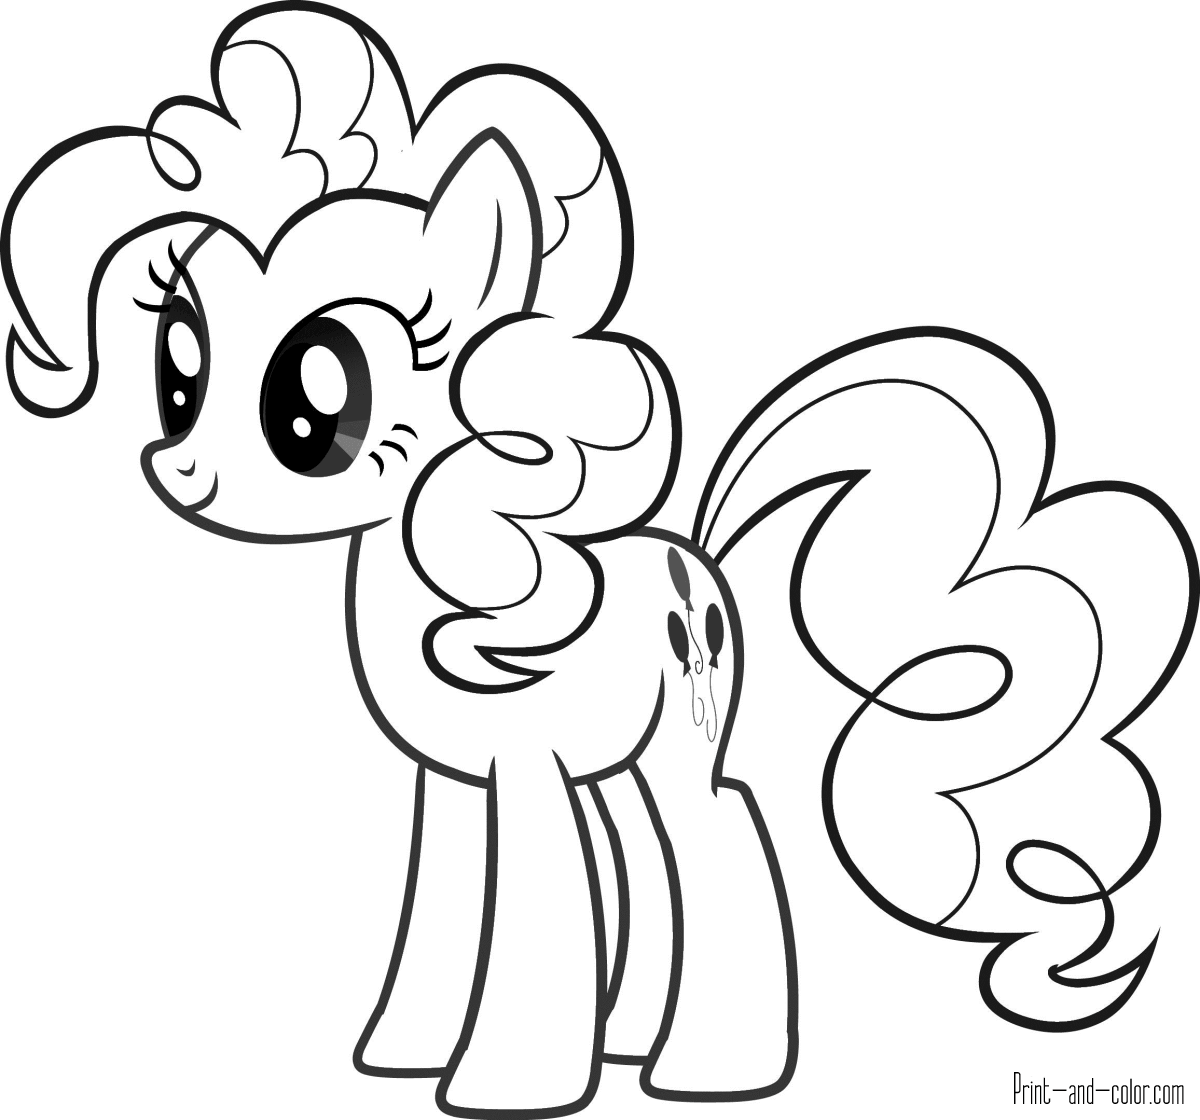 my little pony picters free printable my little pony coloring pages for kids little my pony picters